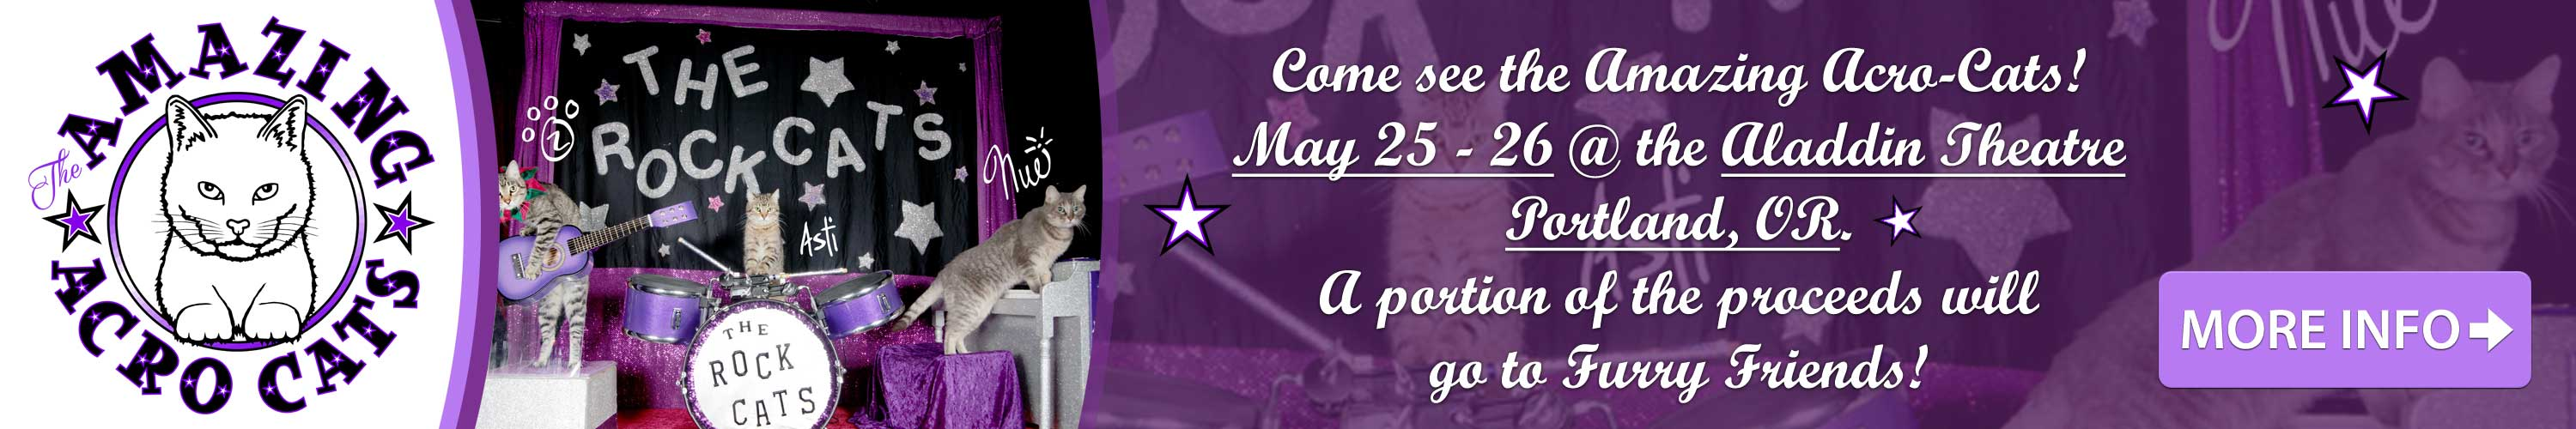 Acro Cats 2019 event banner